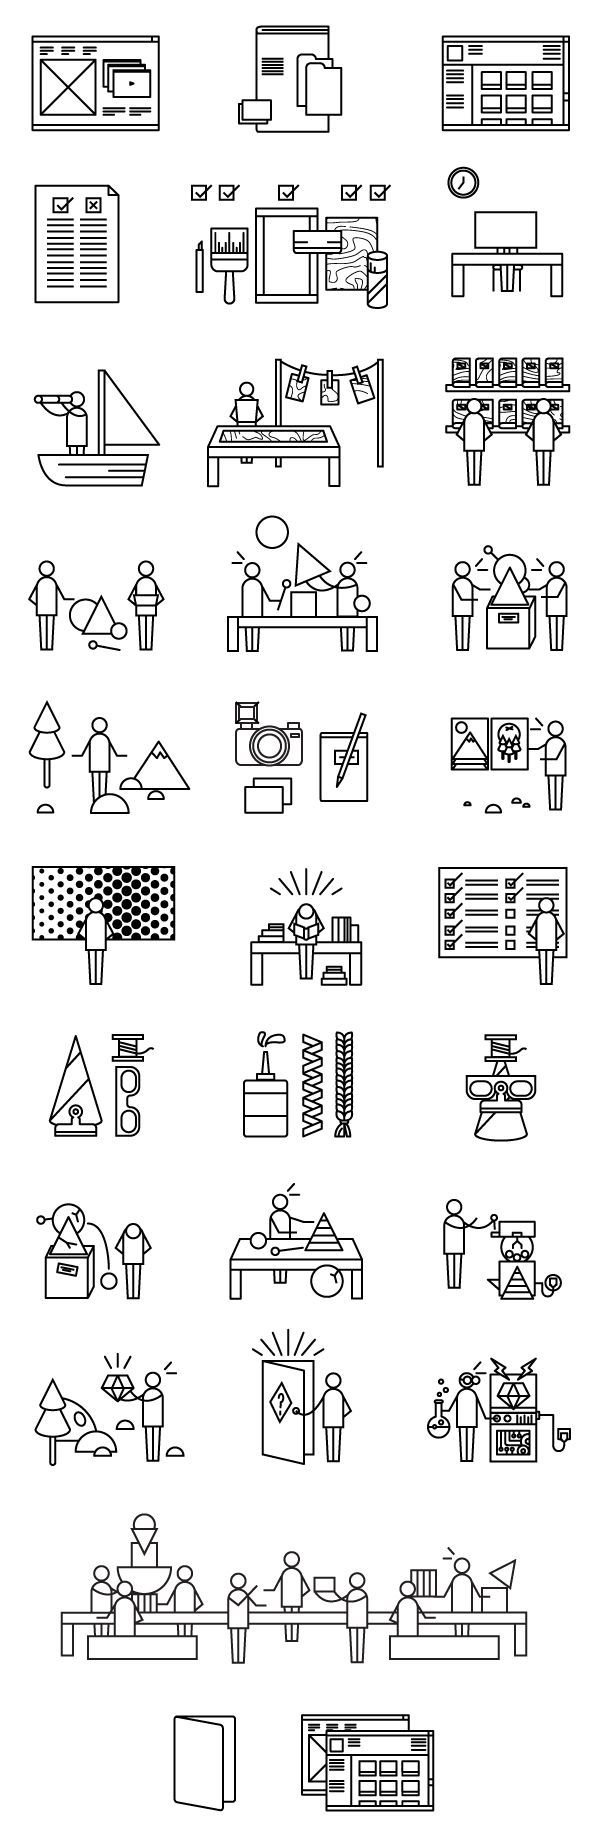 Destination: Play Guide Book Icons by Ella Zheng, via Behance: